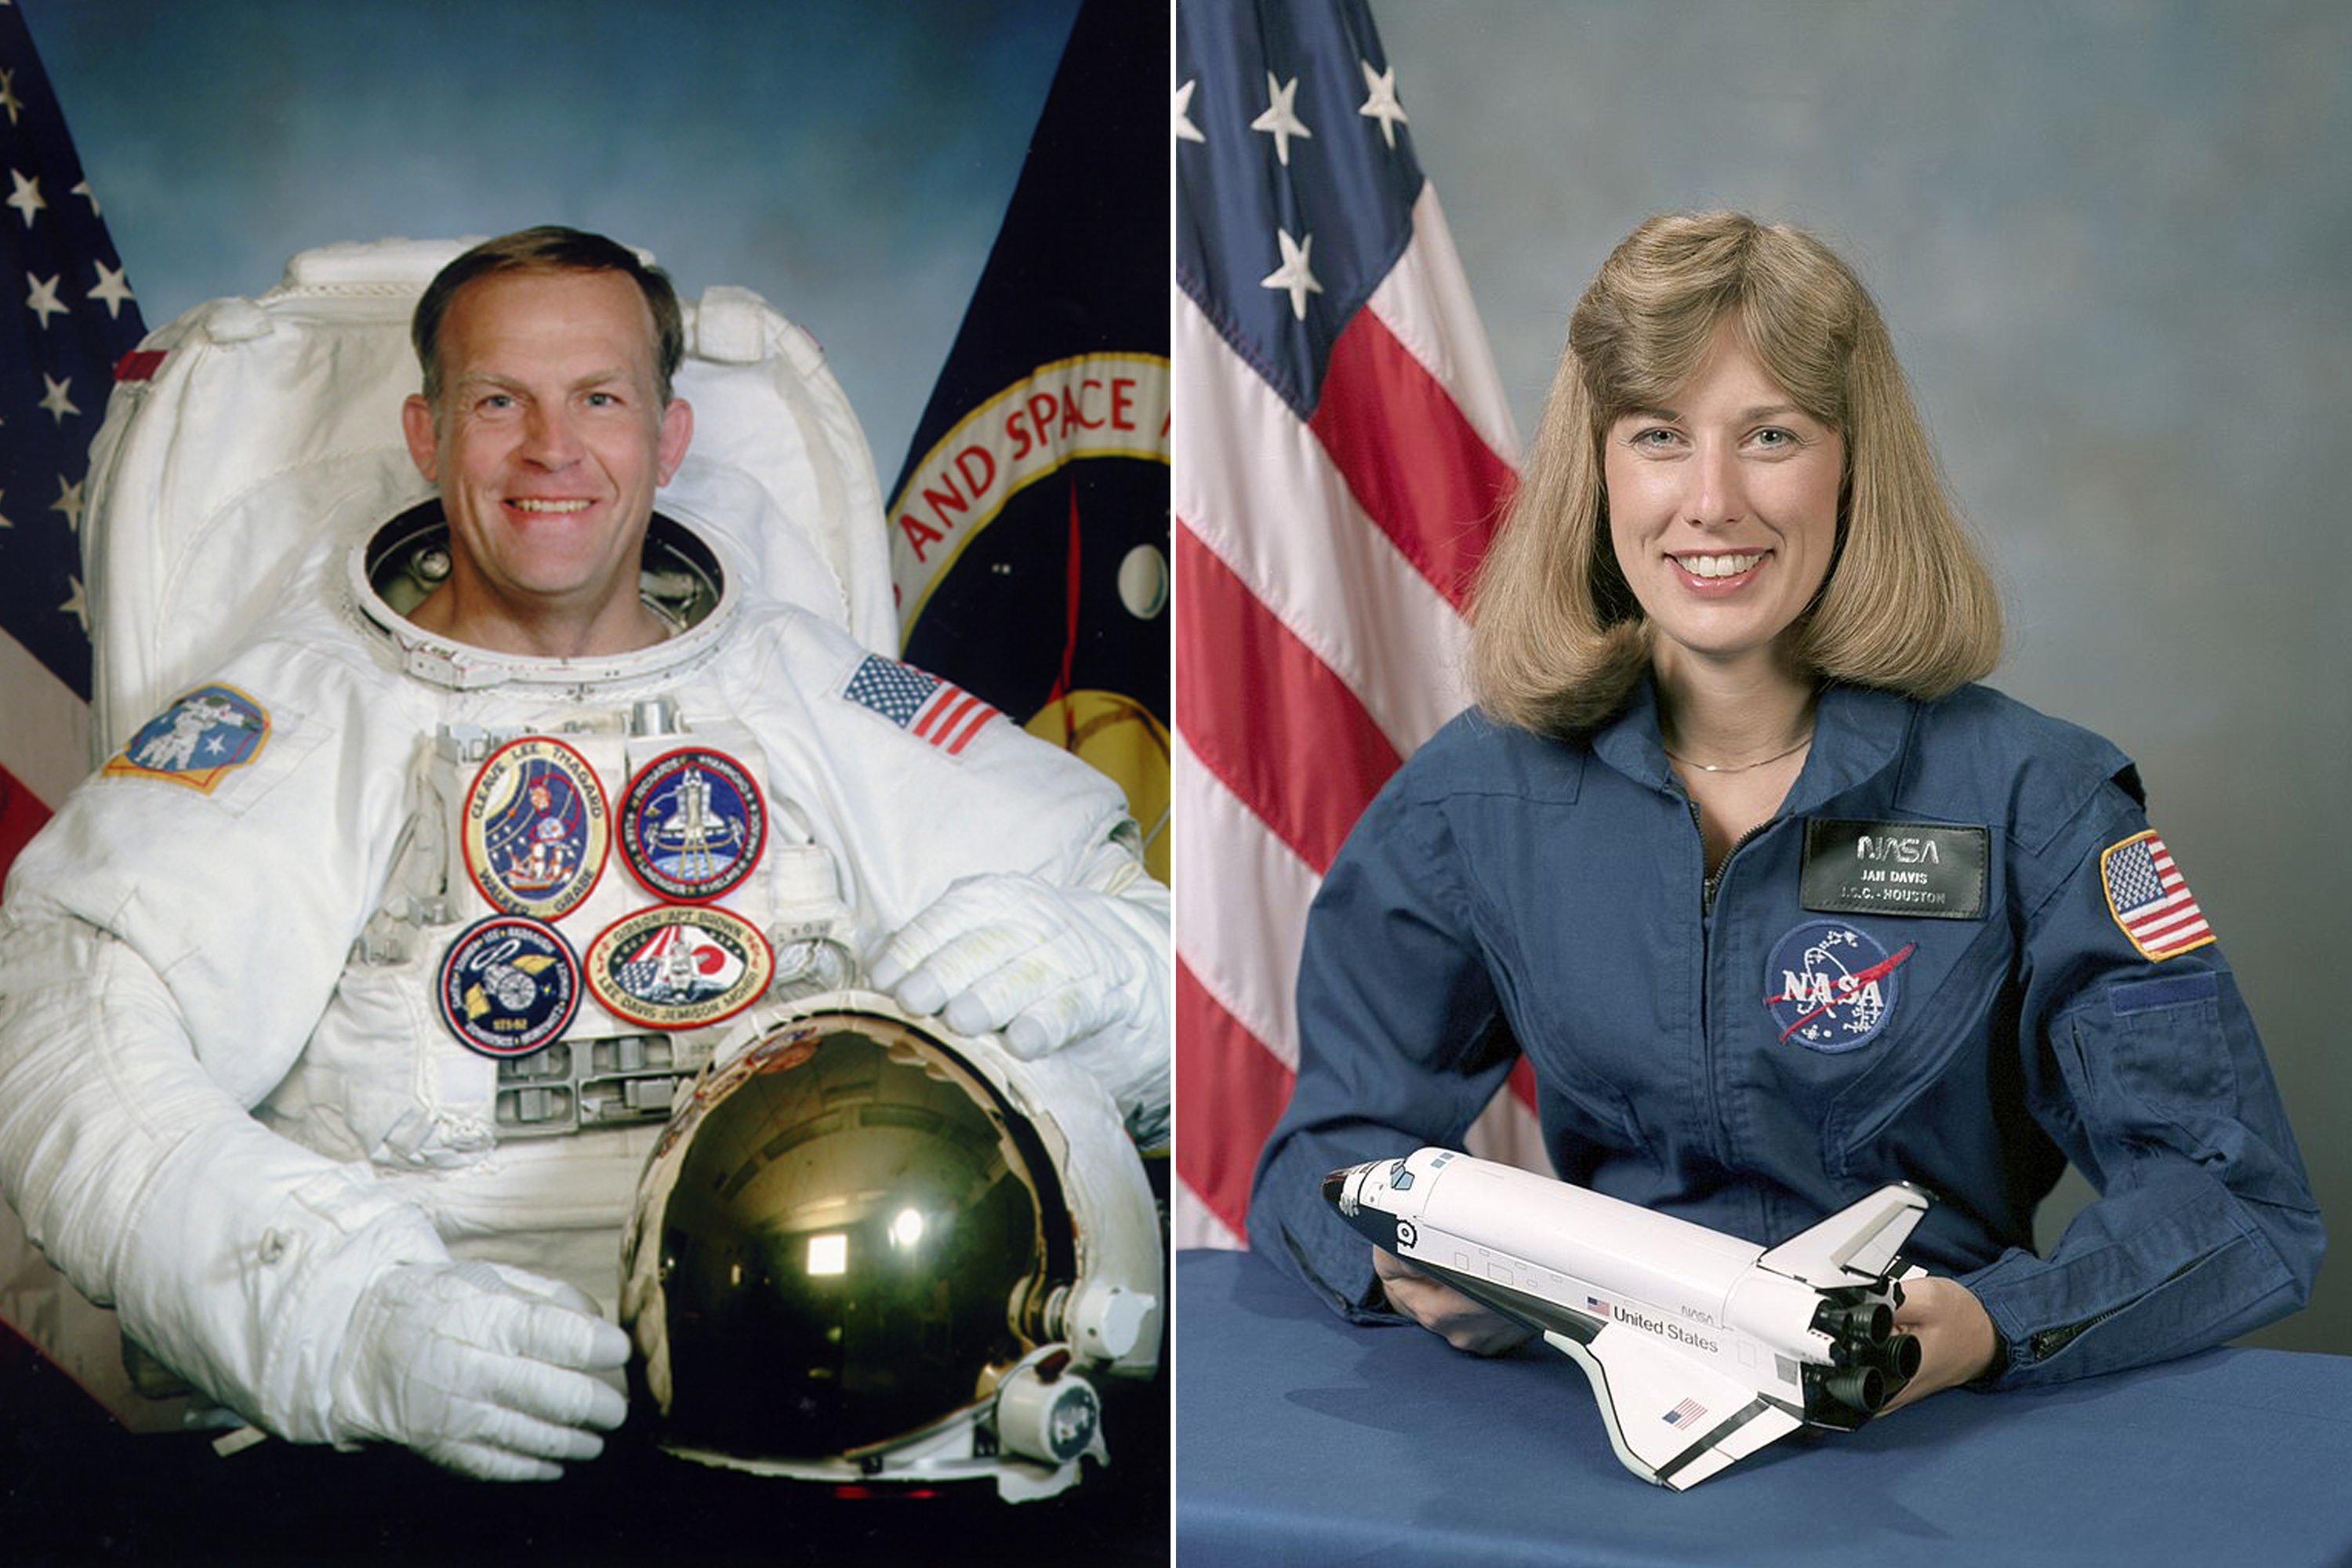 Mark Lee and Jan Davis were the first (and so far only) married couple to fly together in space. They flew aboard Space Shuttle Endeavour (STS-47) in 1992.  Lee and Davis had met during training for the flight and were secretly married shortly before liftoff. Once they disclosed their marriage to NASA, it was too late to train a substitute. NASA has since changed its policies to forbid married couples from flying together